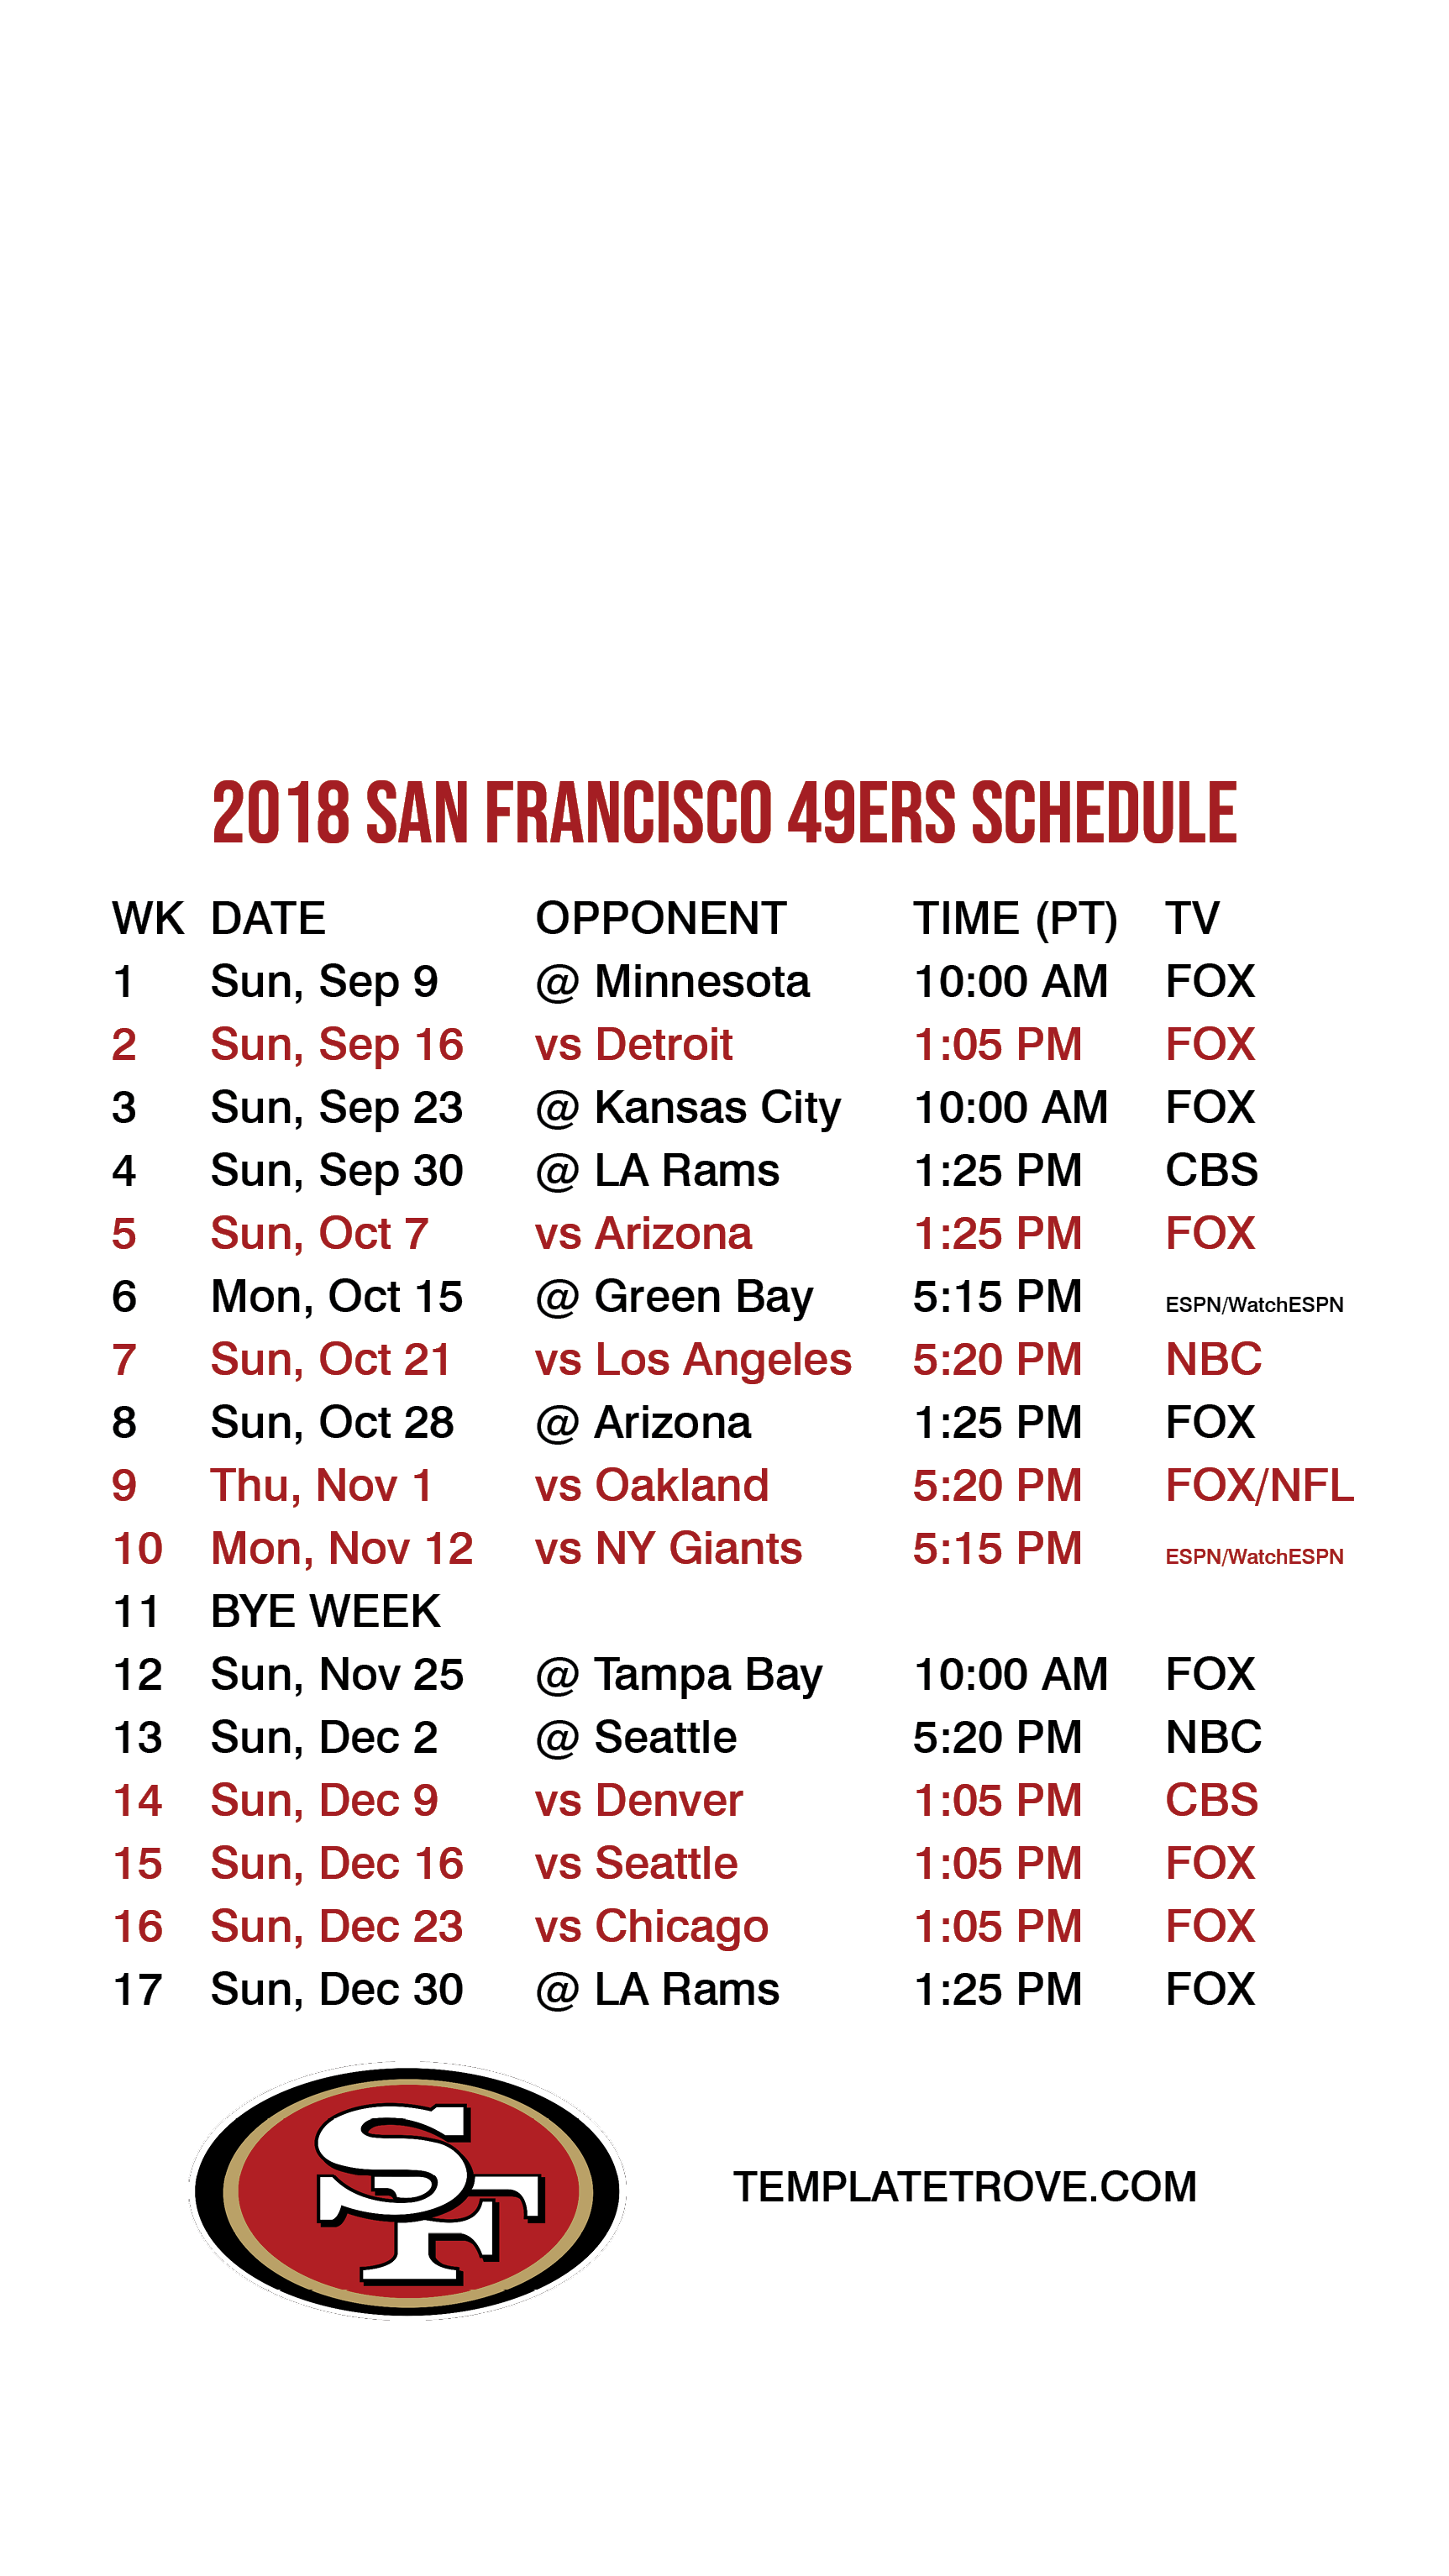 2018 2019 San Francisco 49ers Lock Screen Schedule For